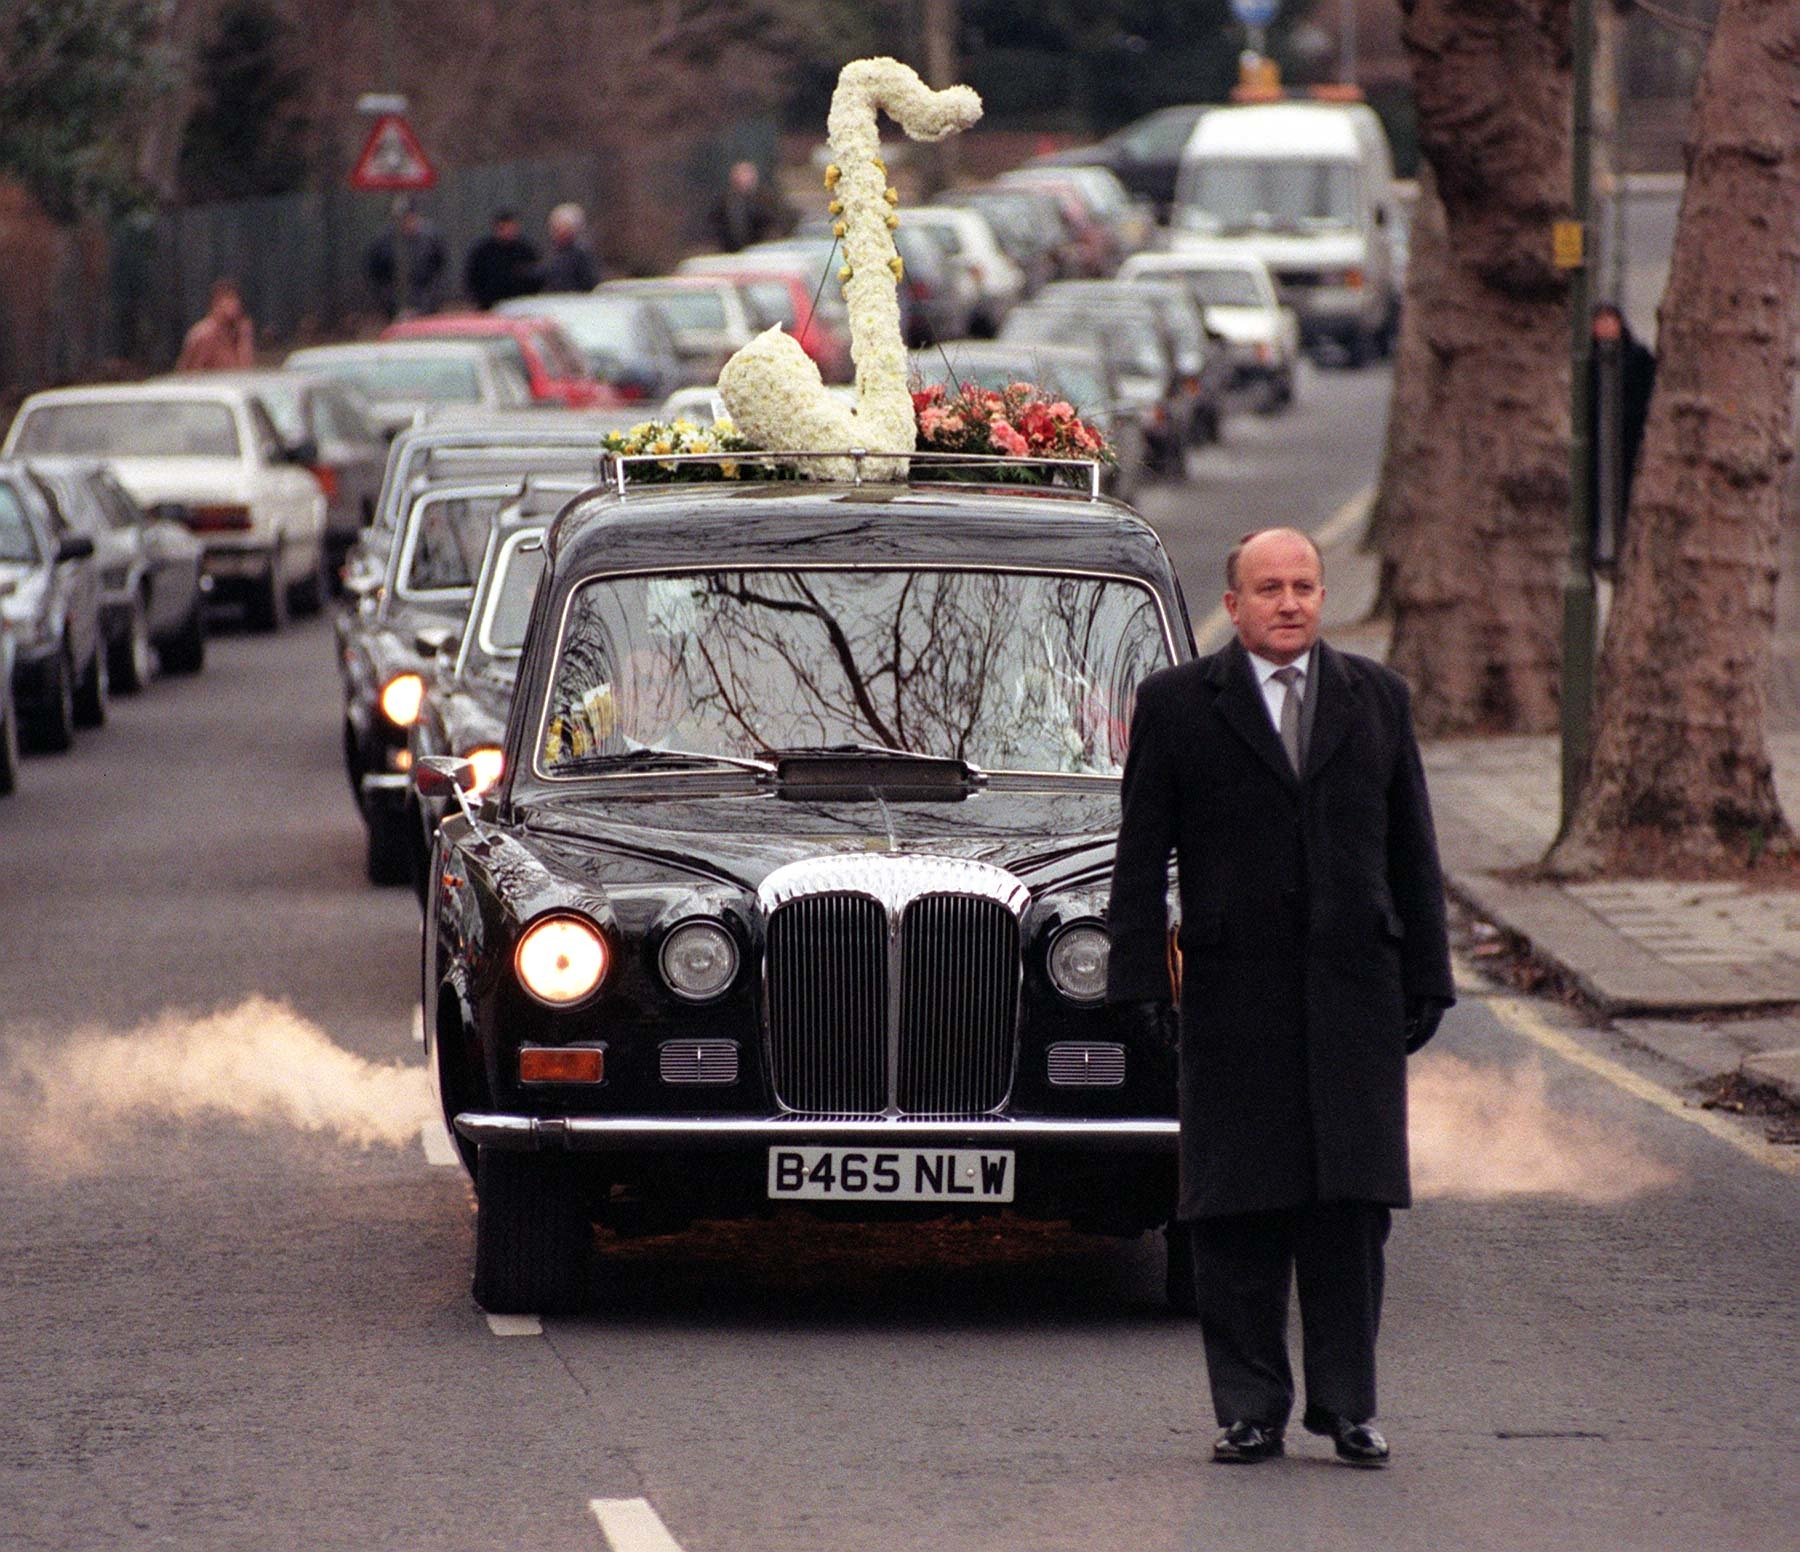 Ronnie Scott's hearse